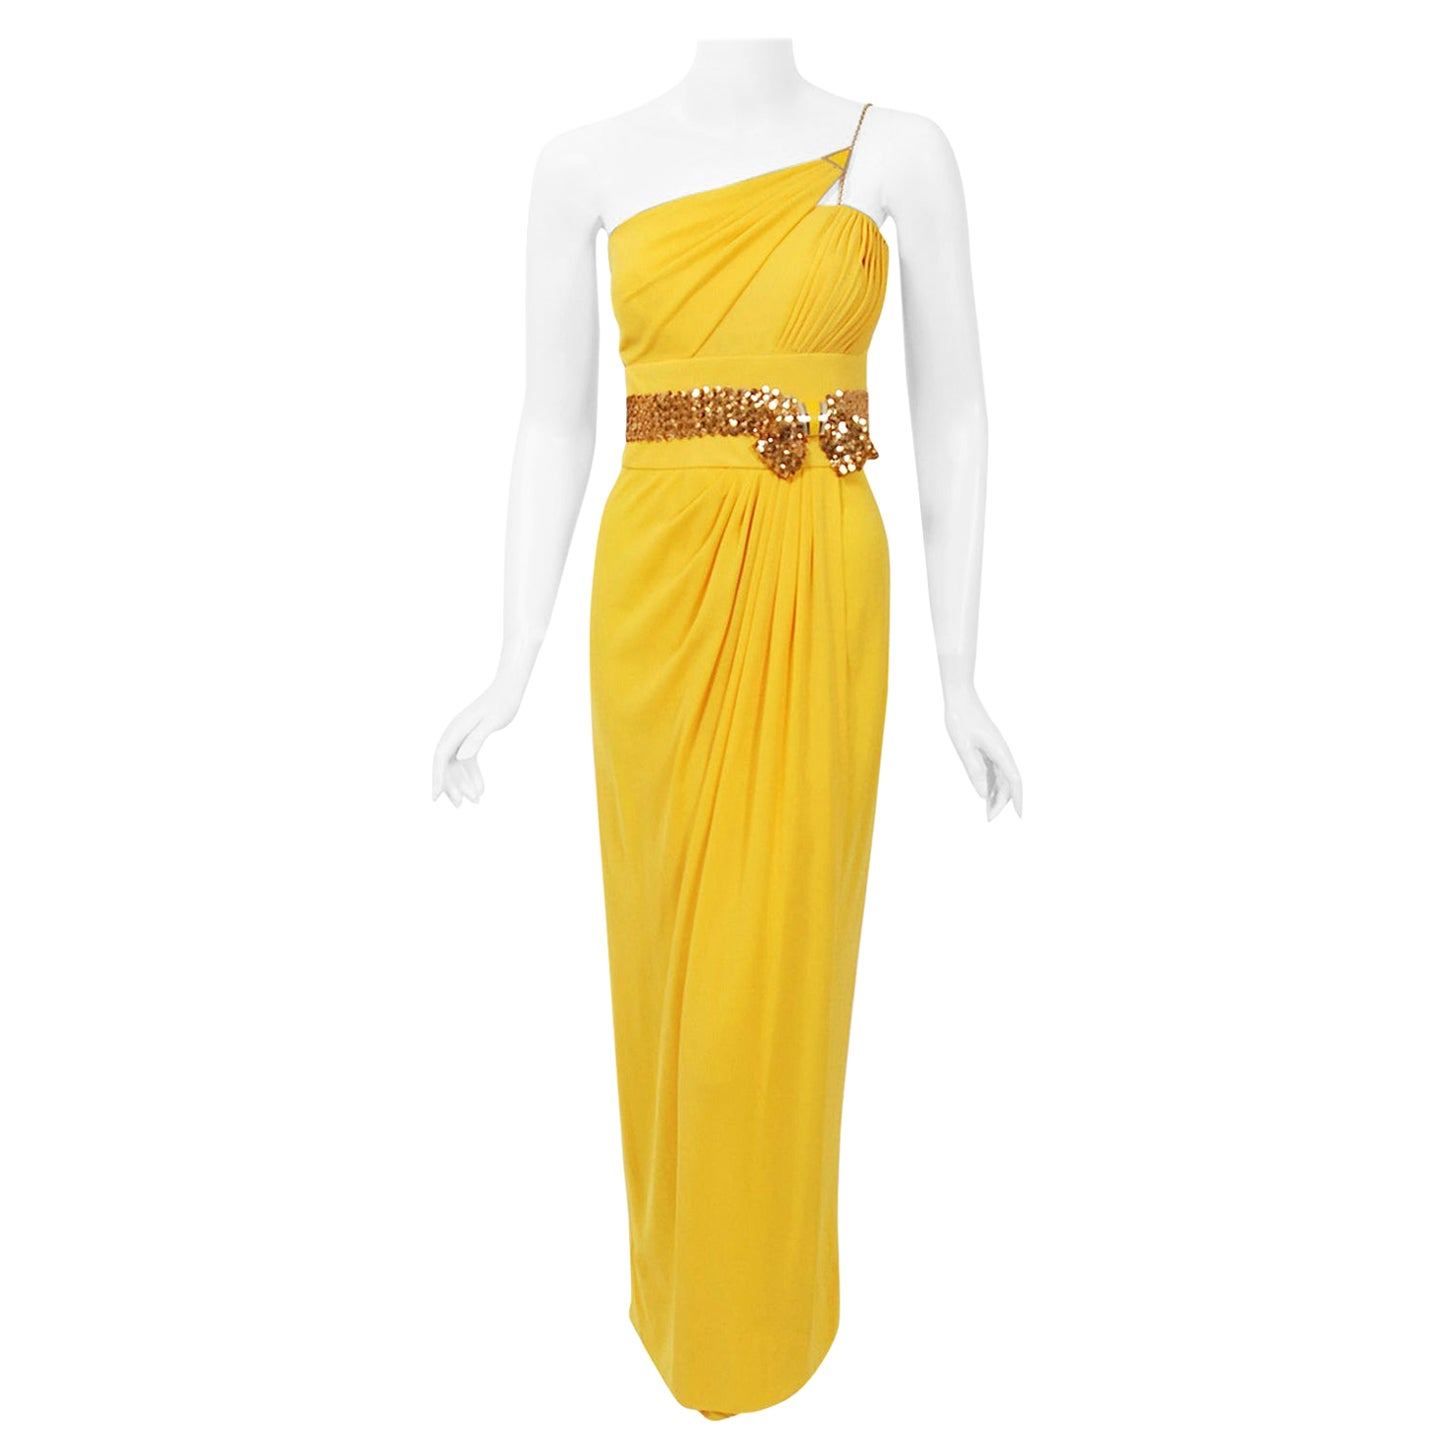 Vintage 1970's Jacques Cassia Couture Yellow Jersey One-Shoulder Draped Dress